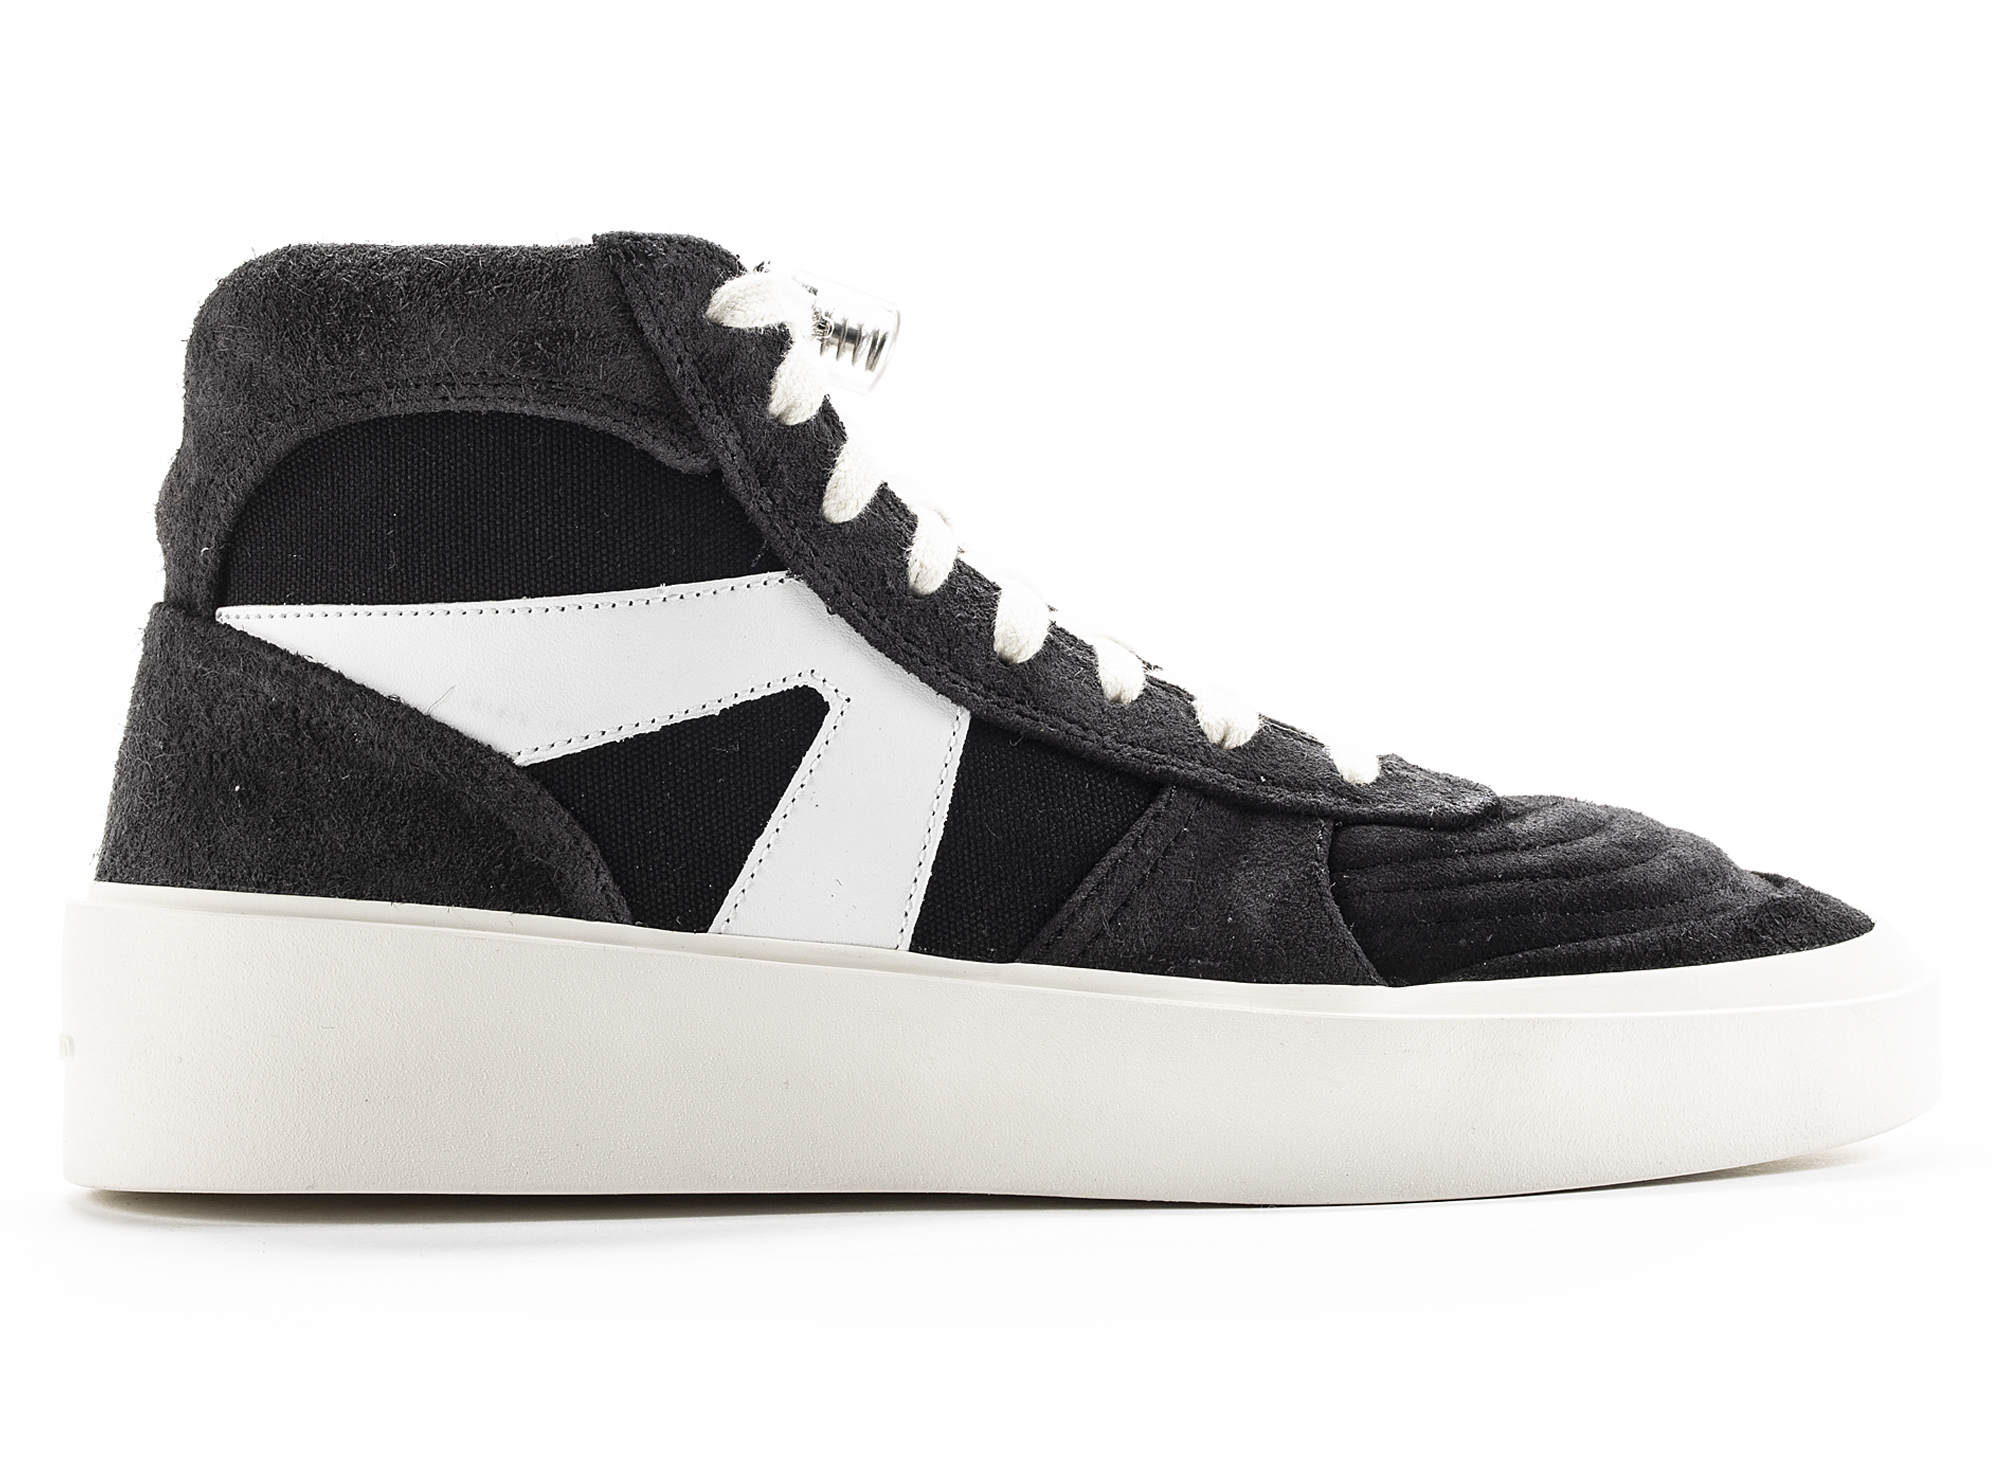 Fear of God Strapless Skate Mid Sneaker